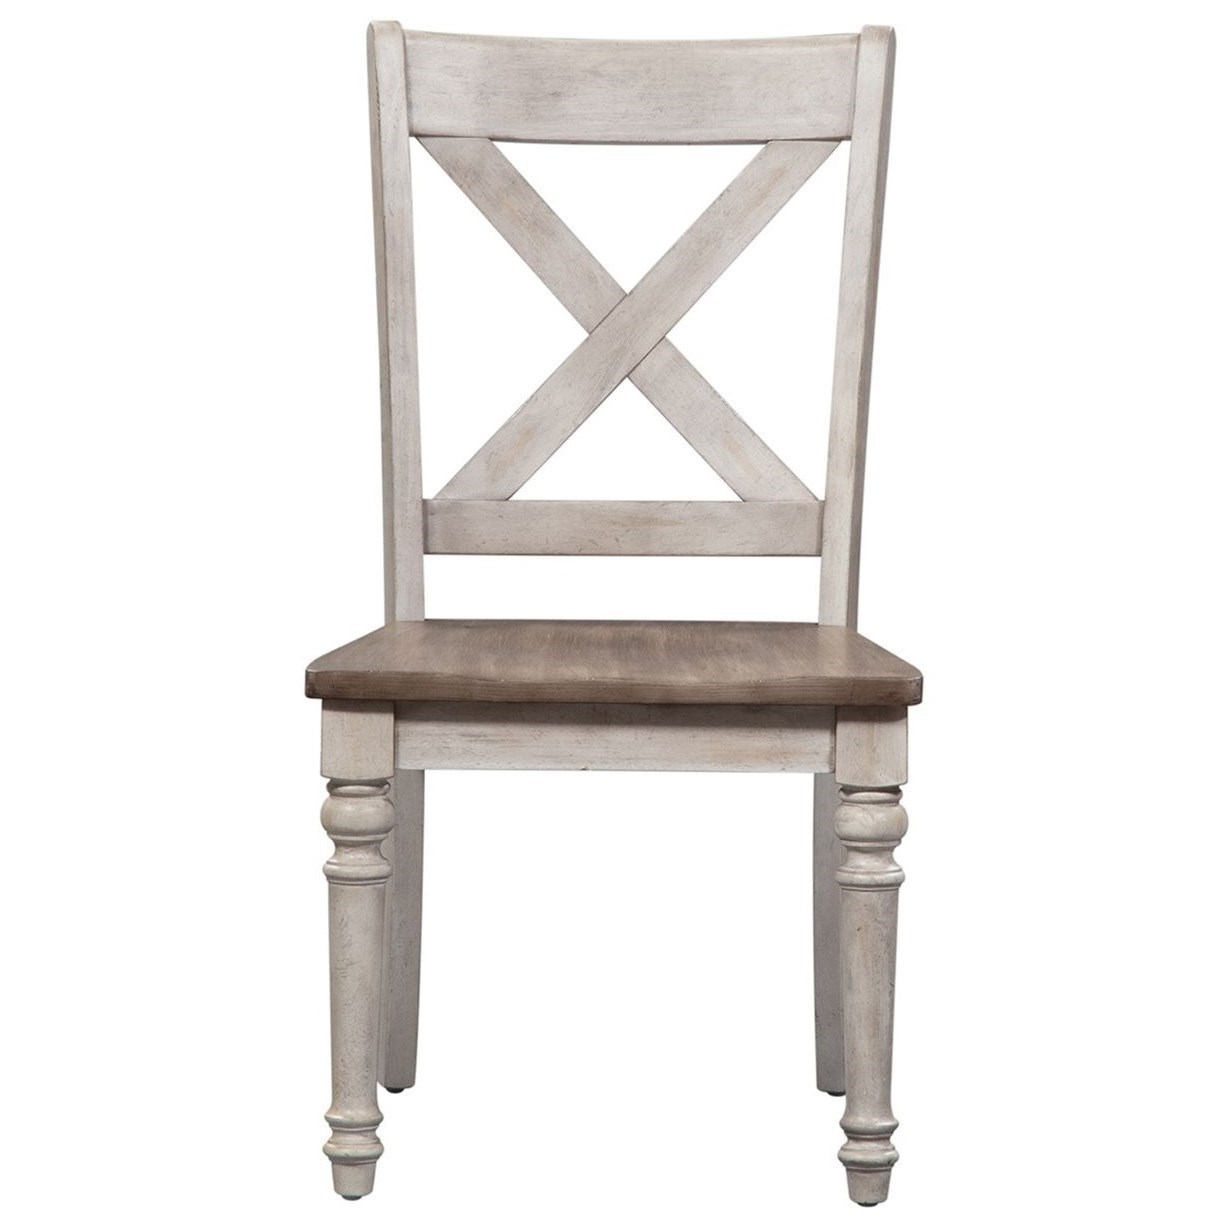 Two-Tone X Back Wood Seat Side Chair (RTA) with Turned Legs